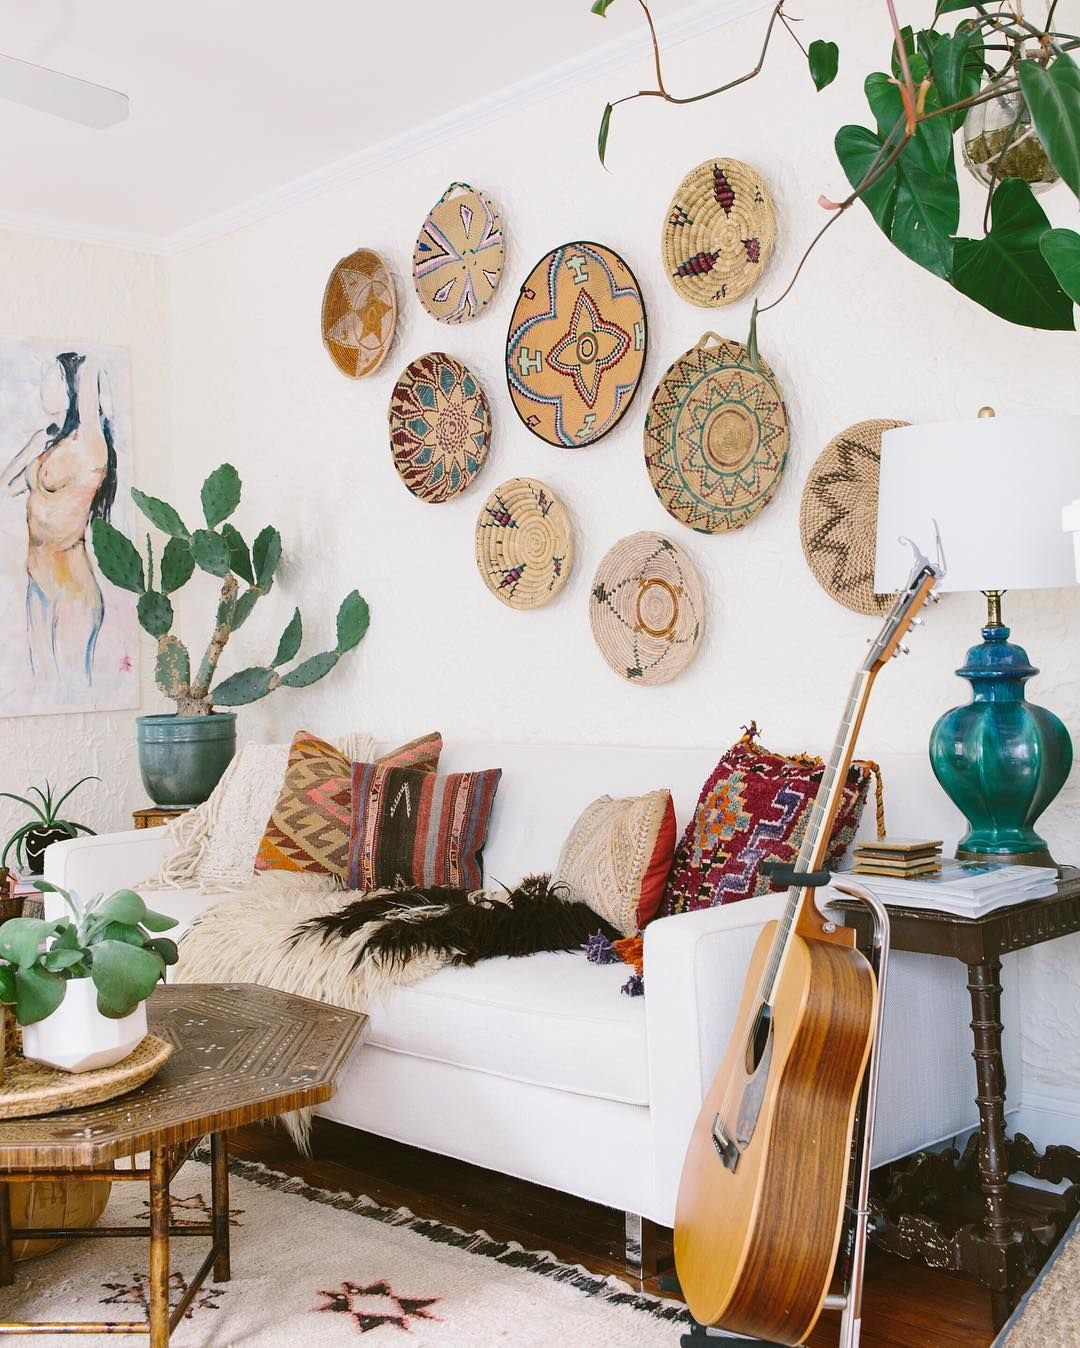 Southwest decor living room  See this Instagram photo by carlaypage u  likes  home space